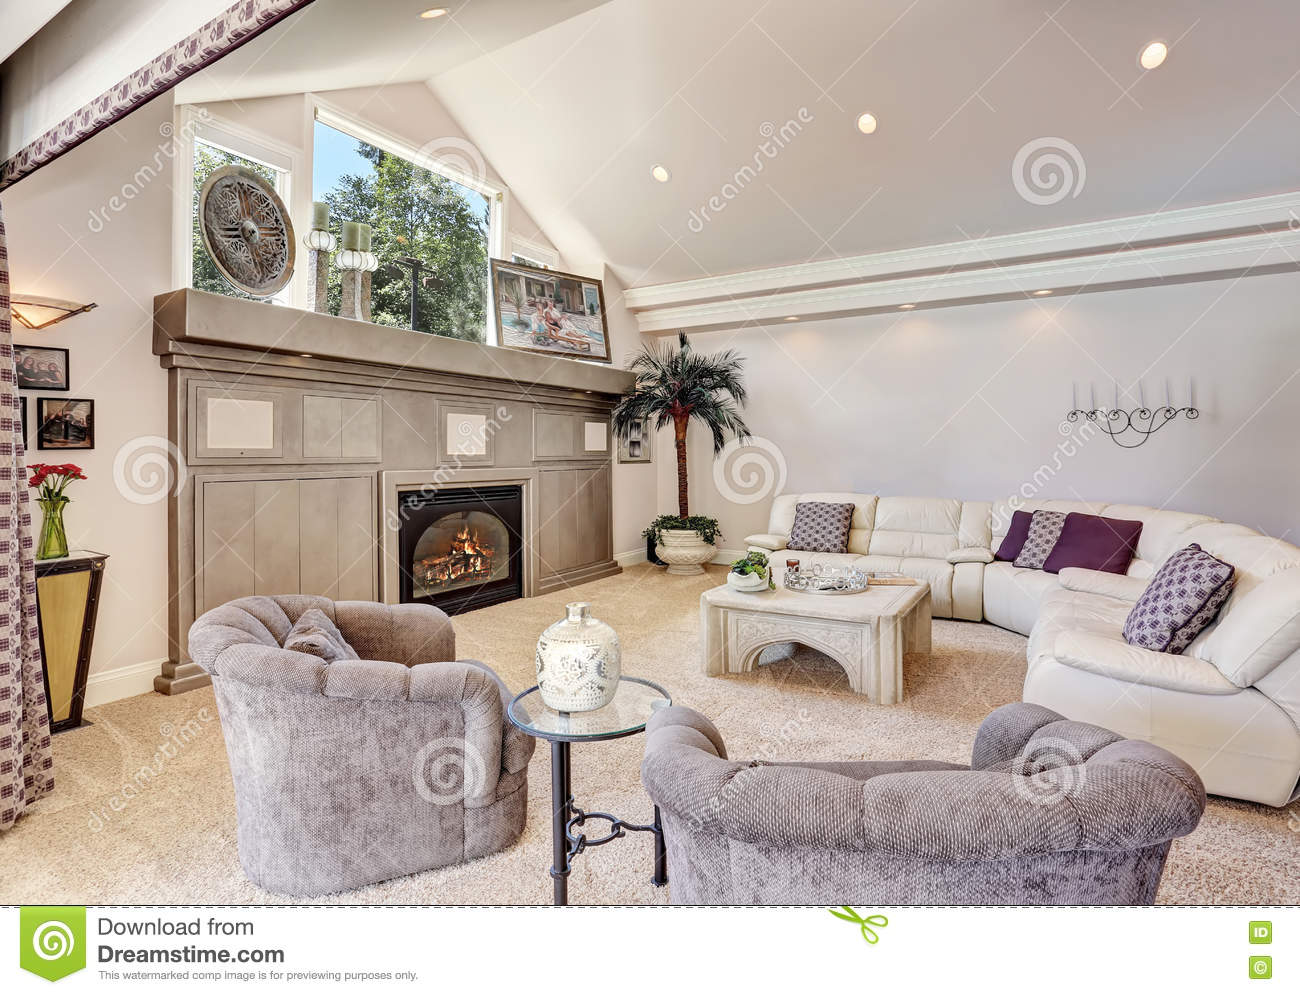 Miraculous Gorgeous Luxury Furnished Family Room Interior Stock Photo Download Free Architecture Designs Licukmadebymaigaardcom